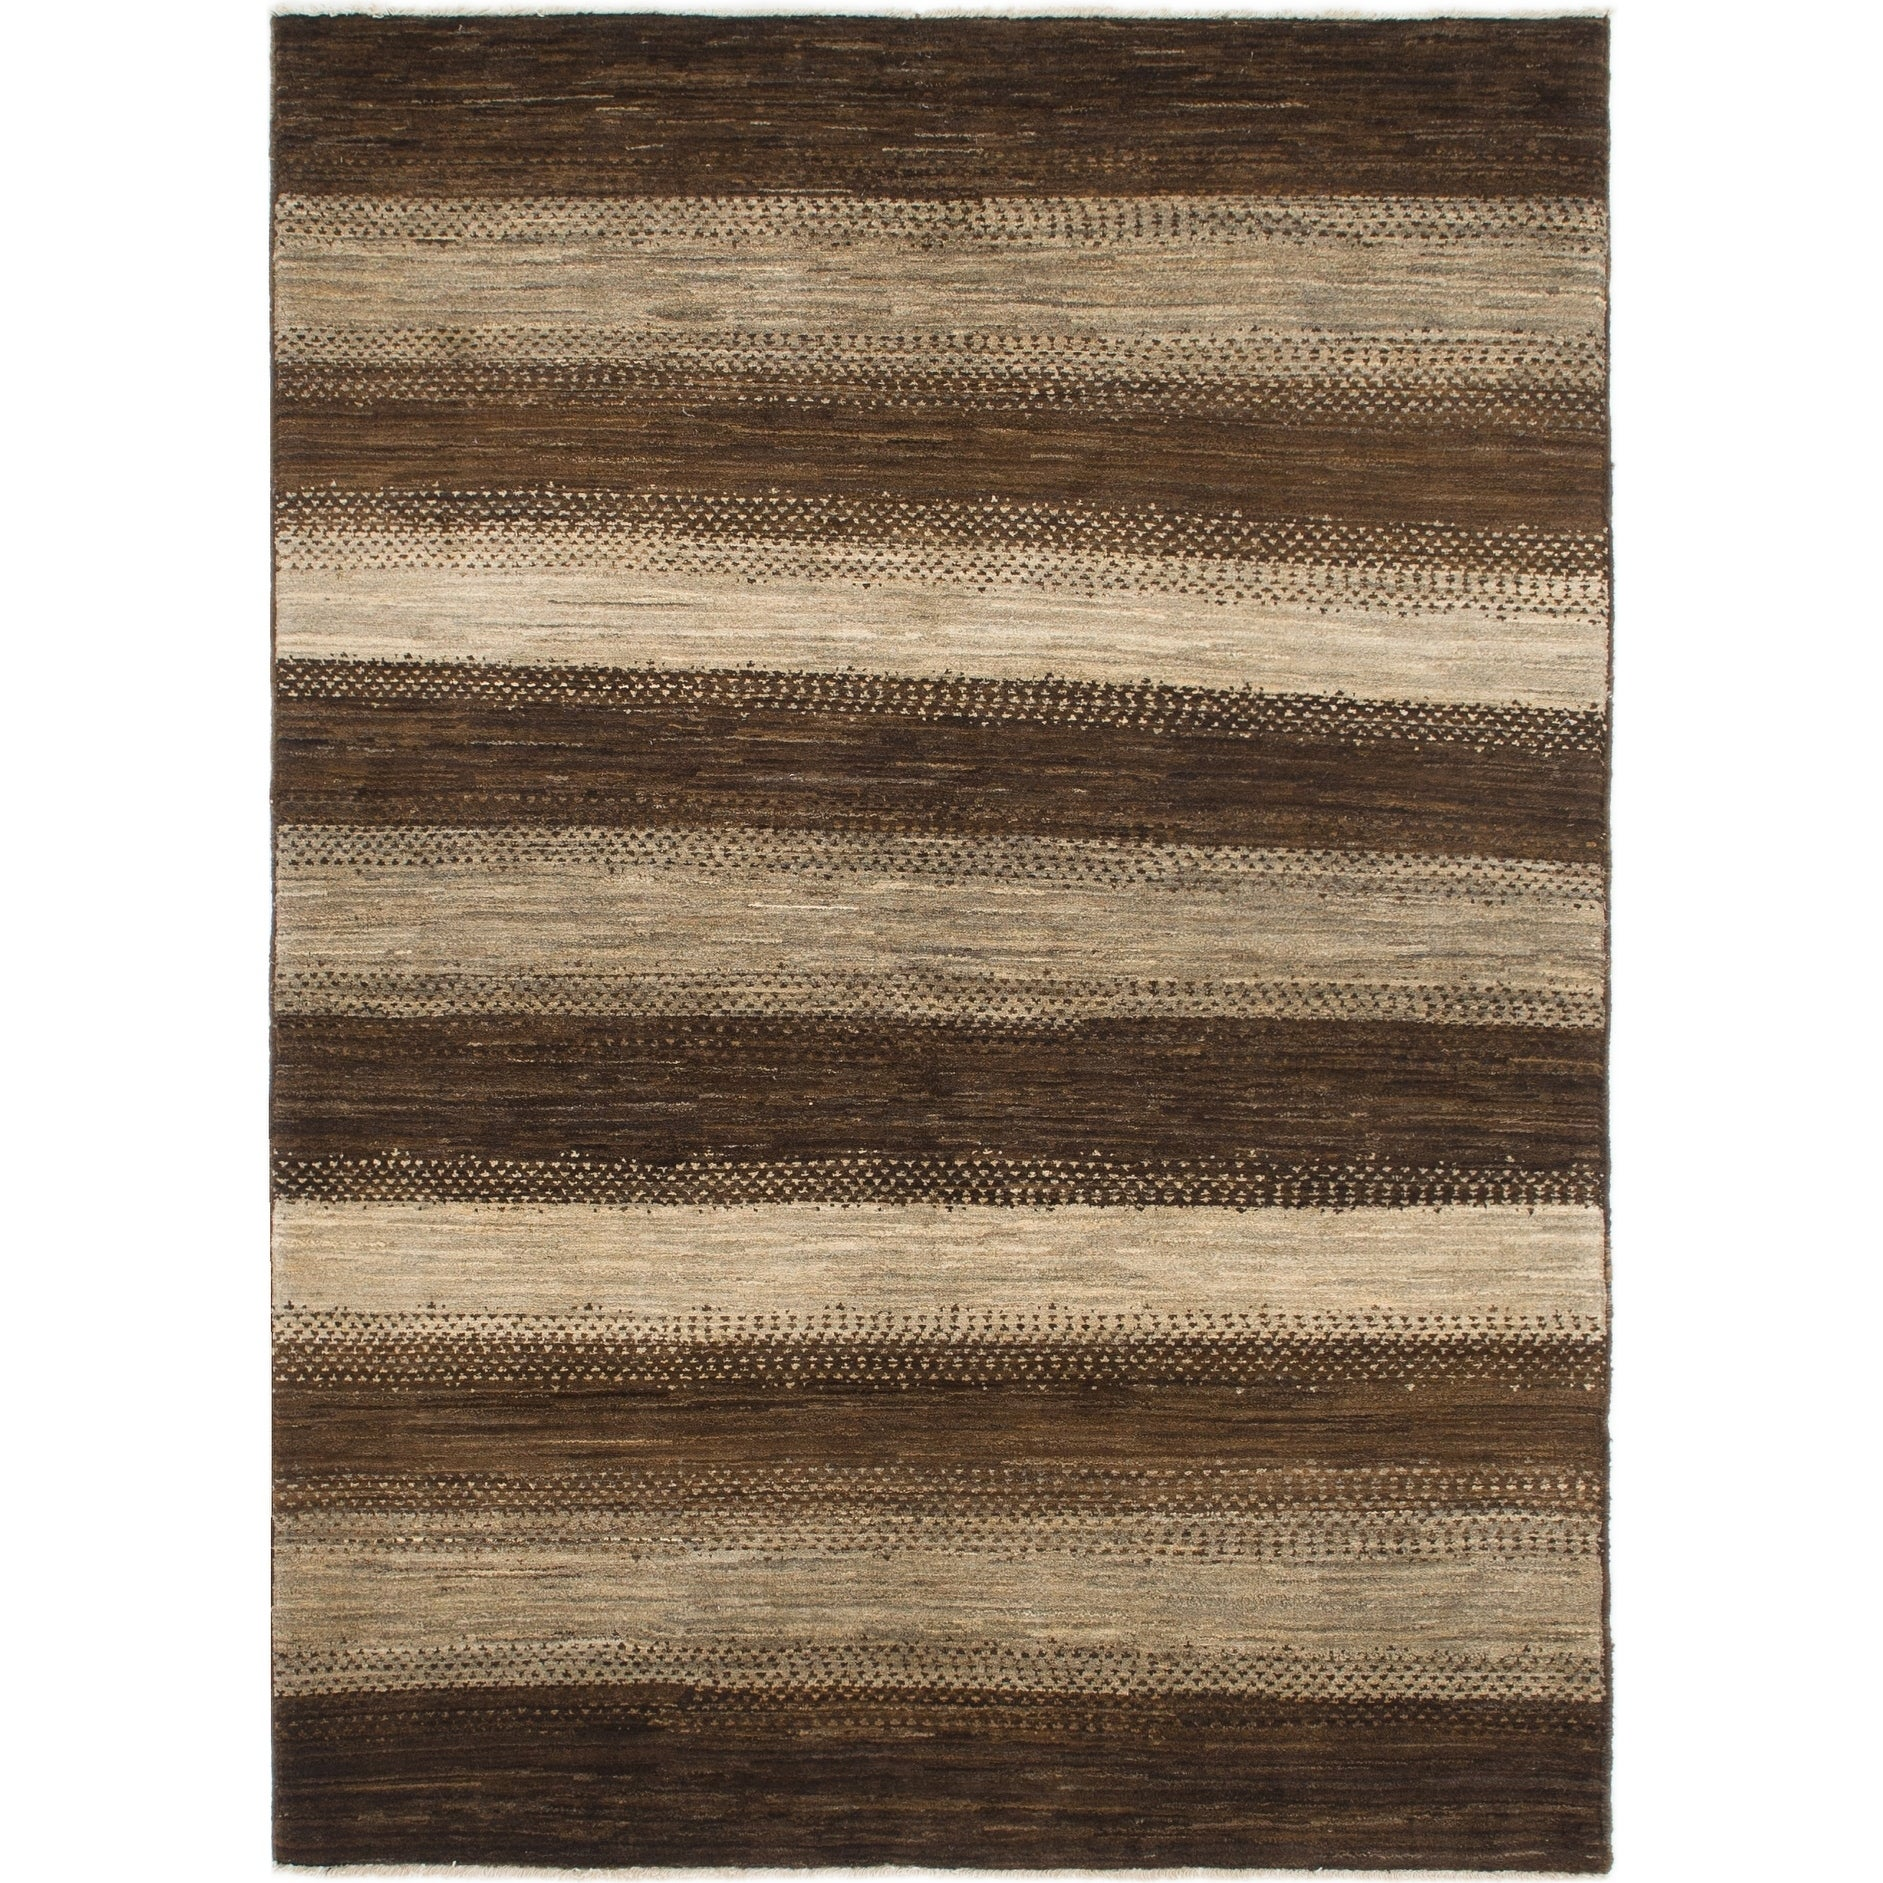 Hand Knotted Kashkuli Gabbeh Wool Area Rug - 5 7 x 7 8 (Brown - 5 7 x 7 8)